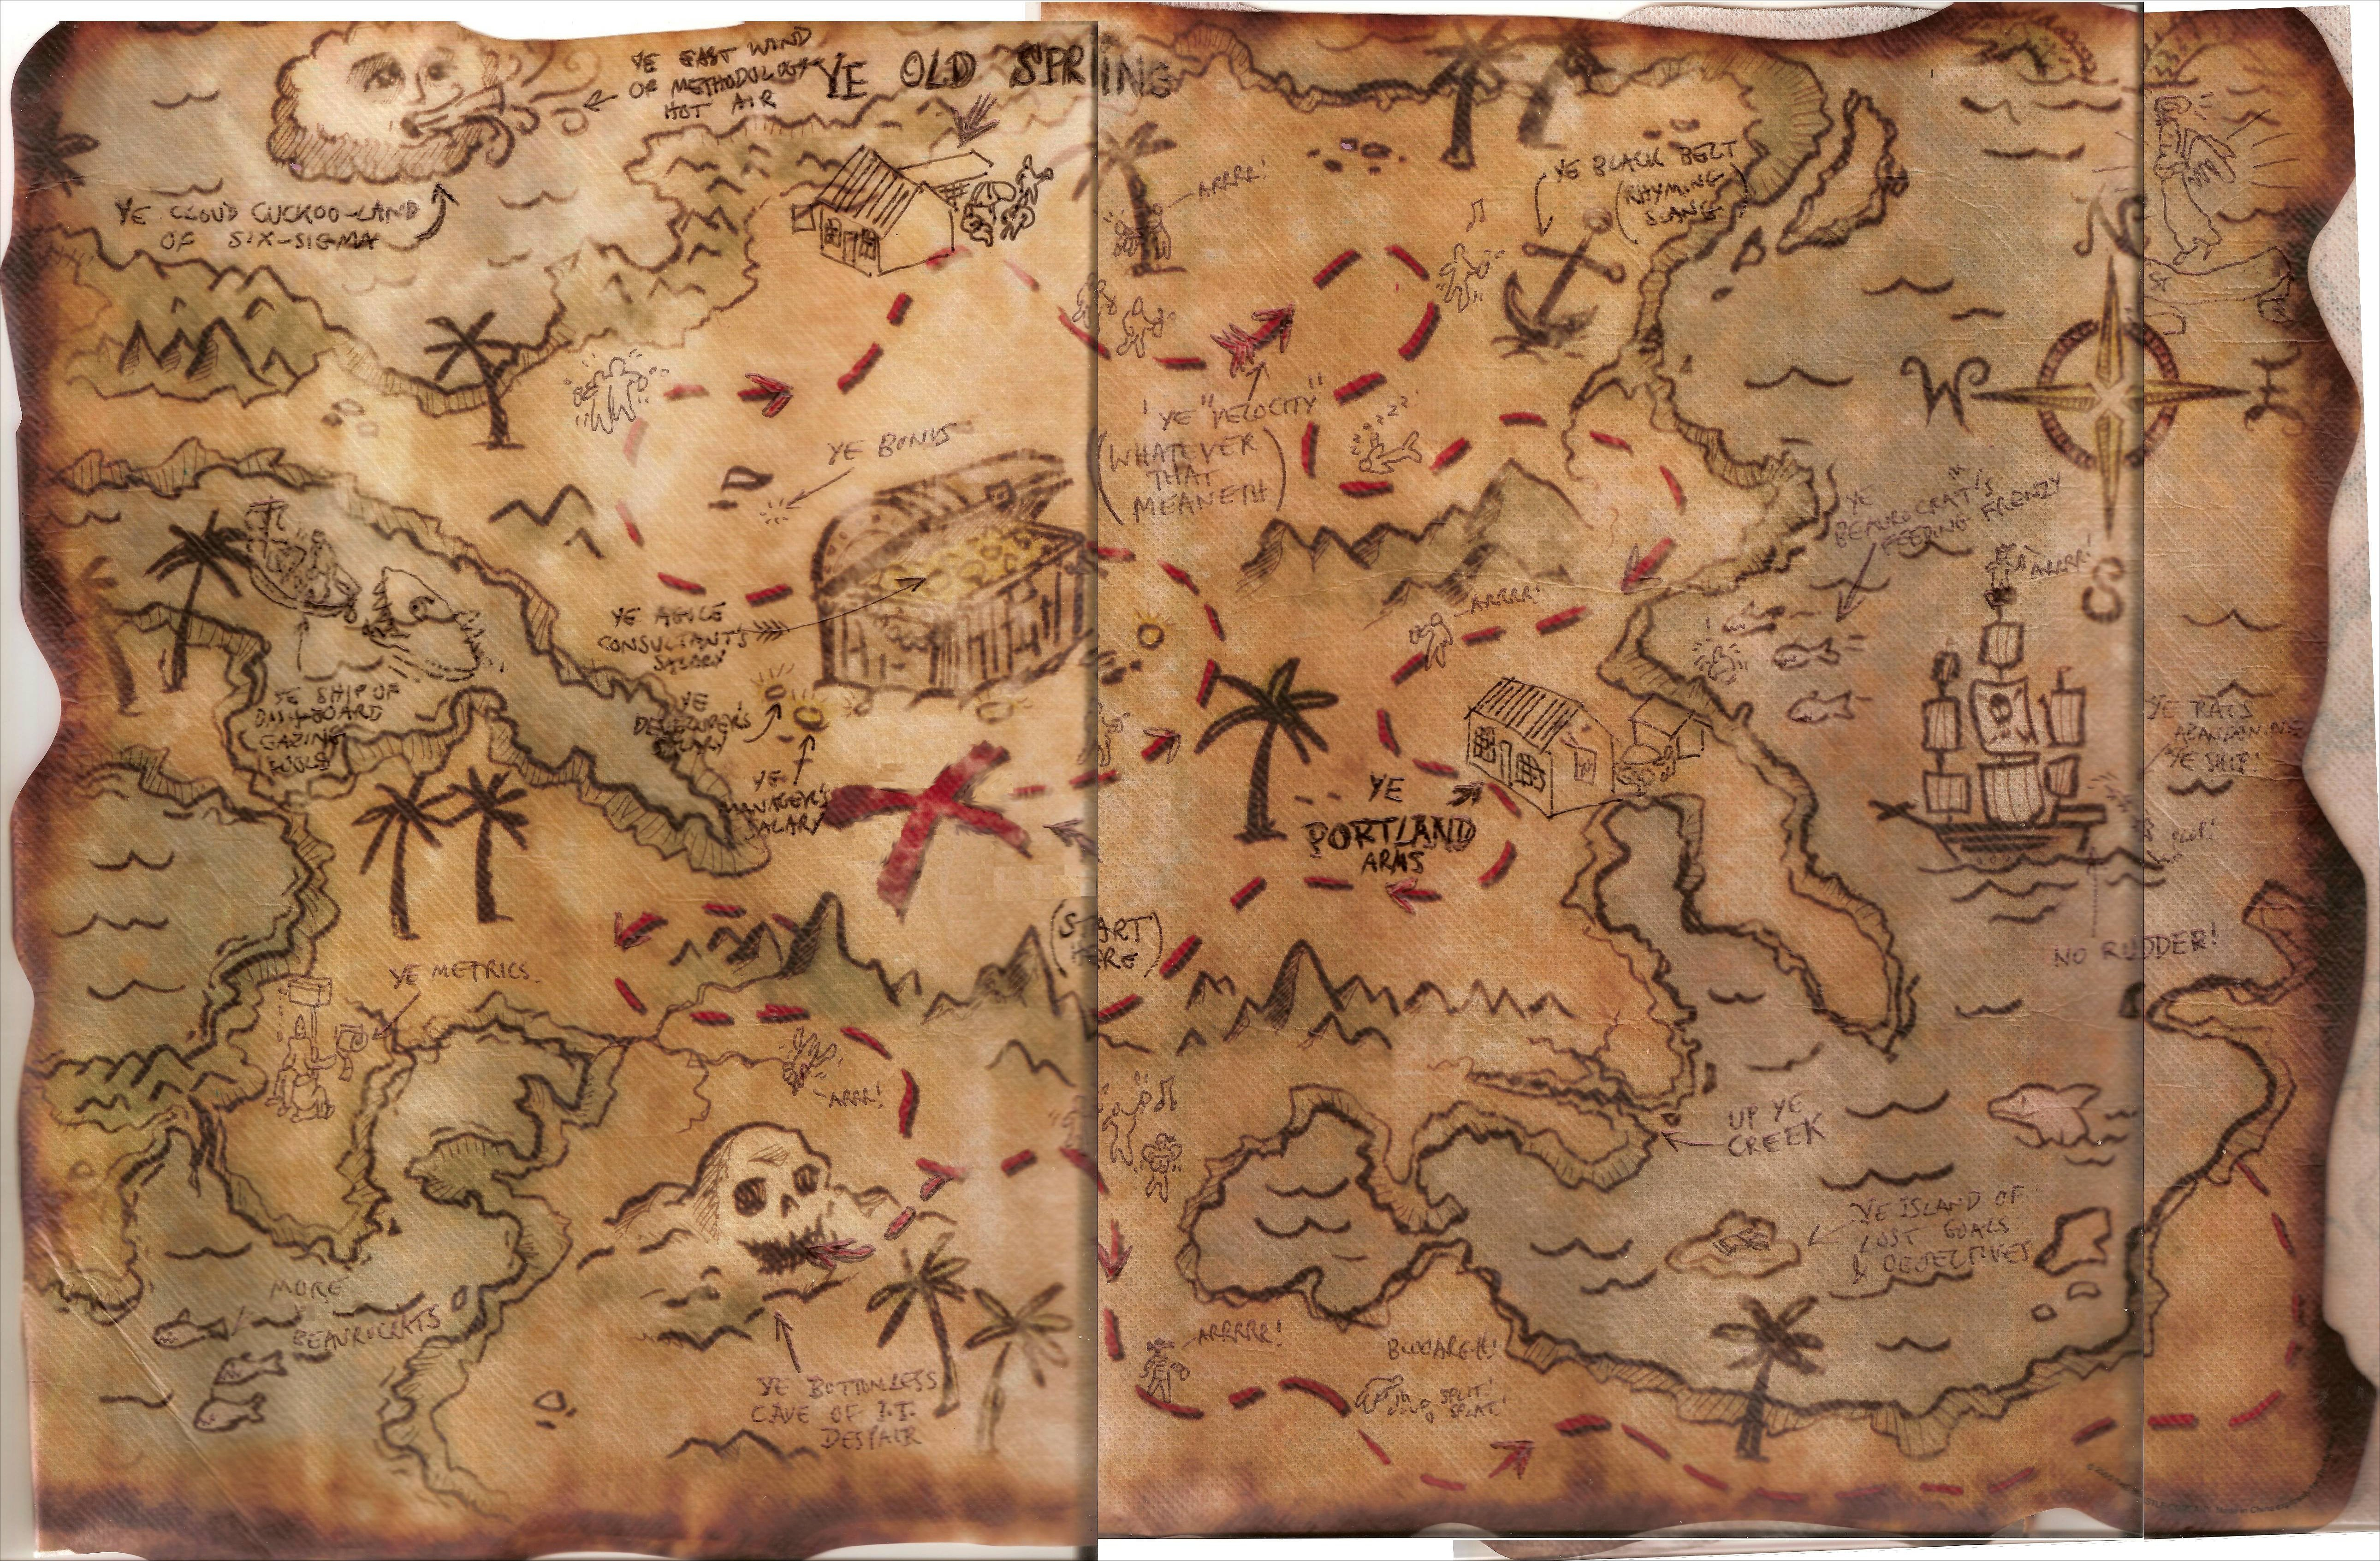 Free Pictures Of A Pirate Map, Download Free Clip Art, Free Clip Art - Free Printable Pirate Maps